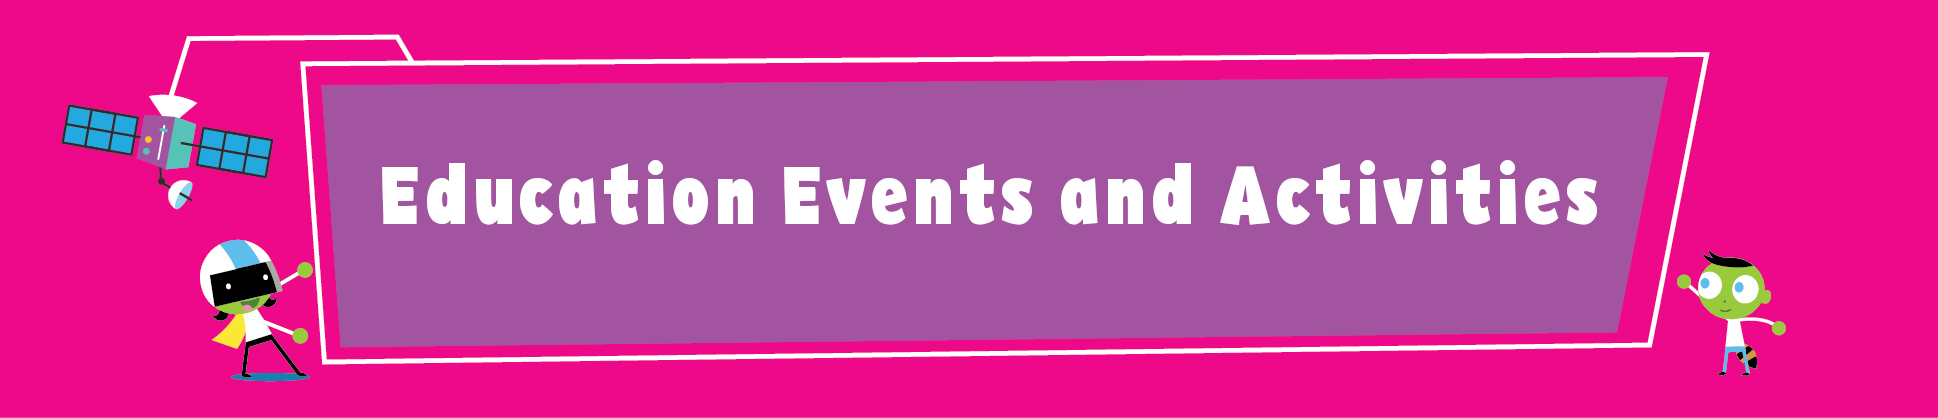 Education Events header